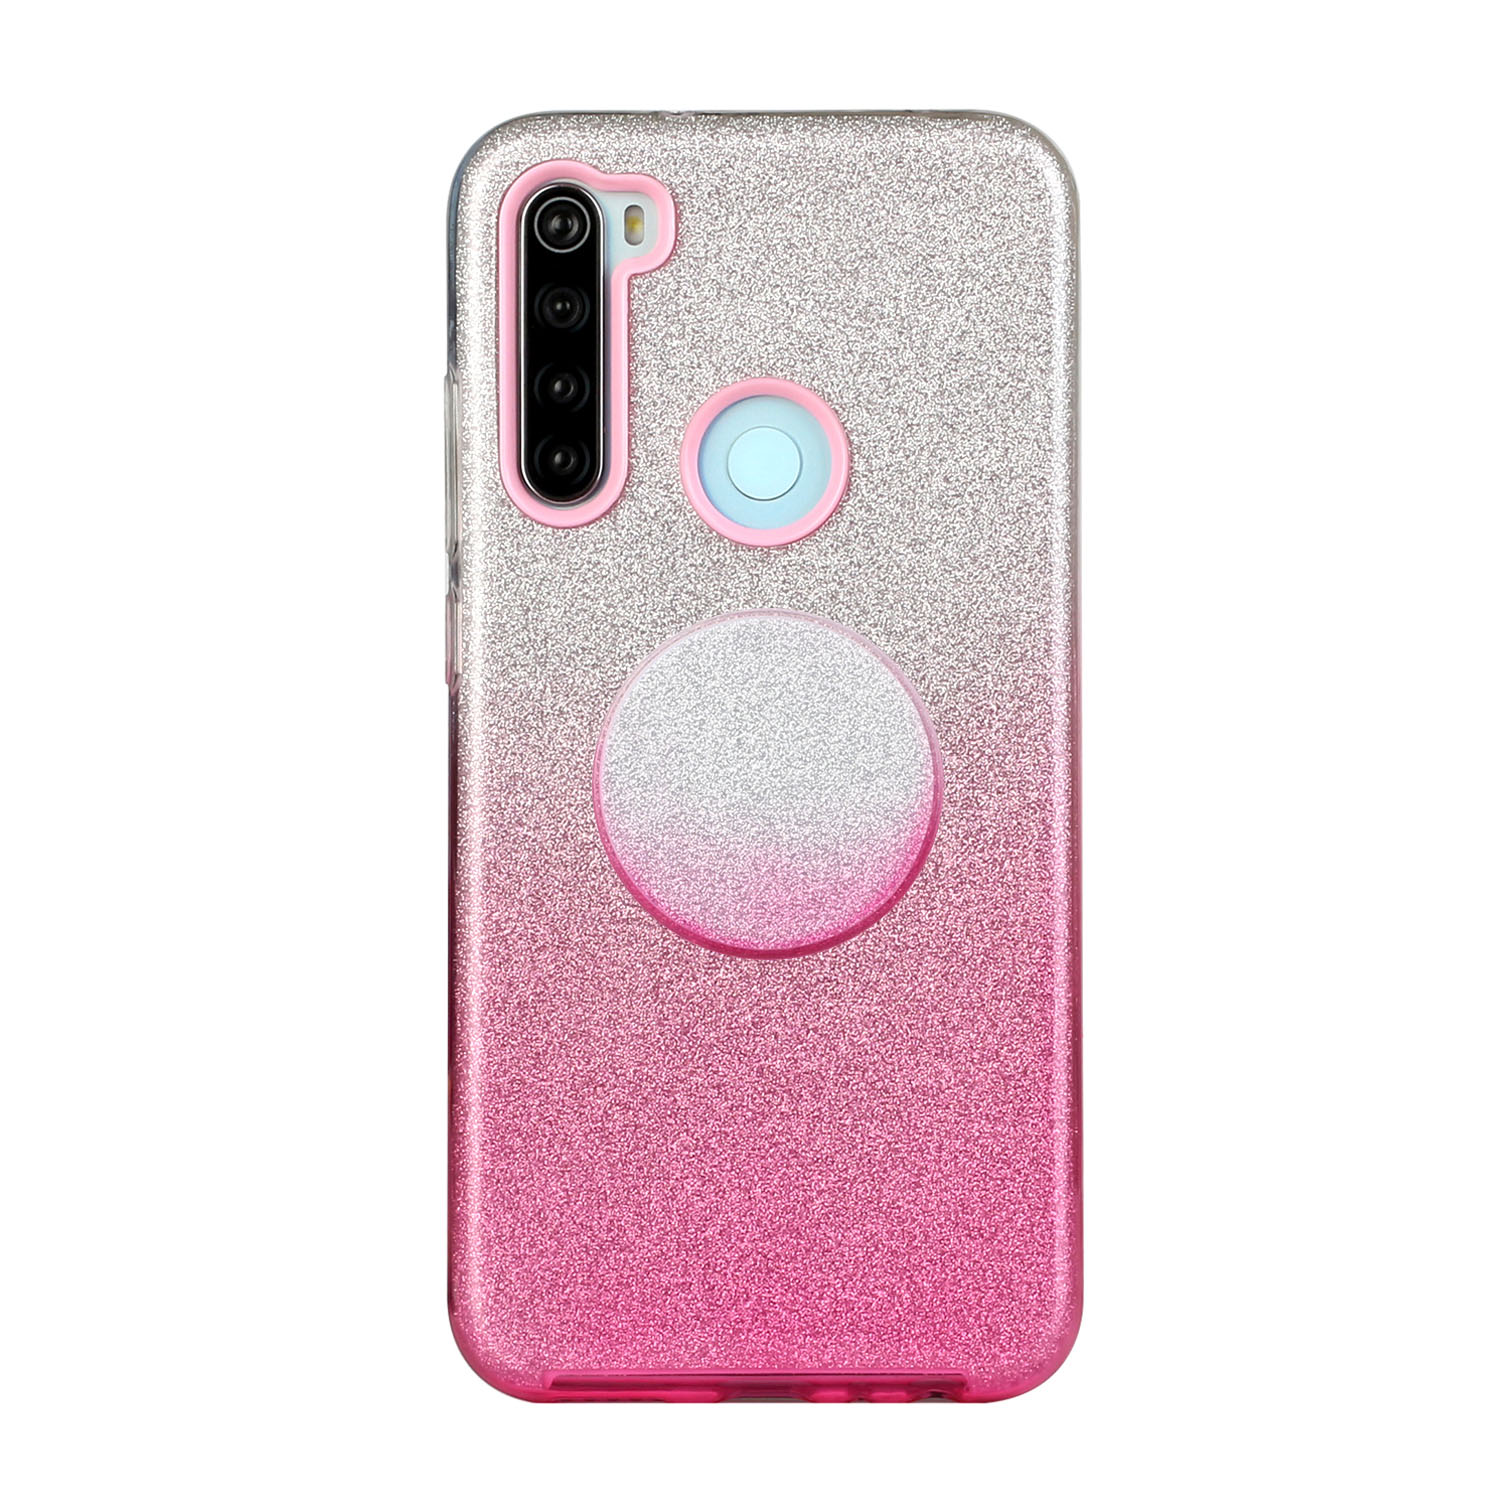 For OPPO Realme 5/Realme 5 Pro/A5 2020/A9 2020/A52/A92 Phone Case Gradient Color Glitter Powder Phone Cover with Airbag Bracket Pink